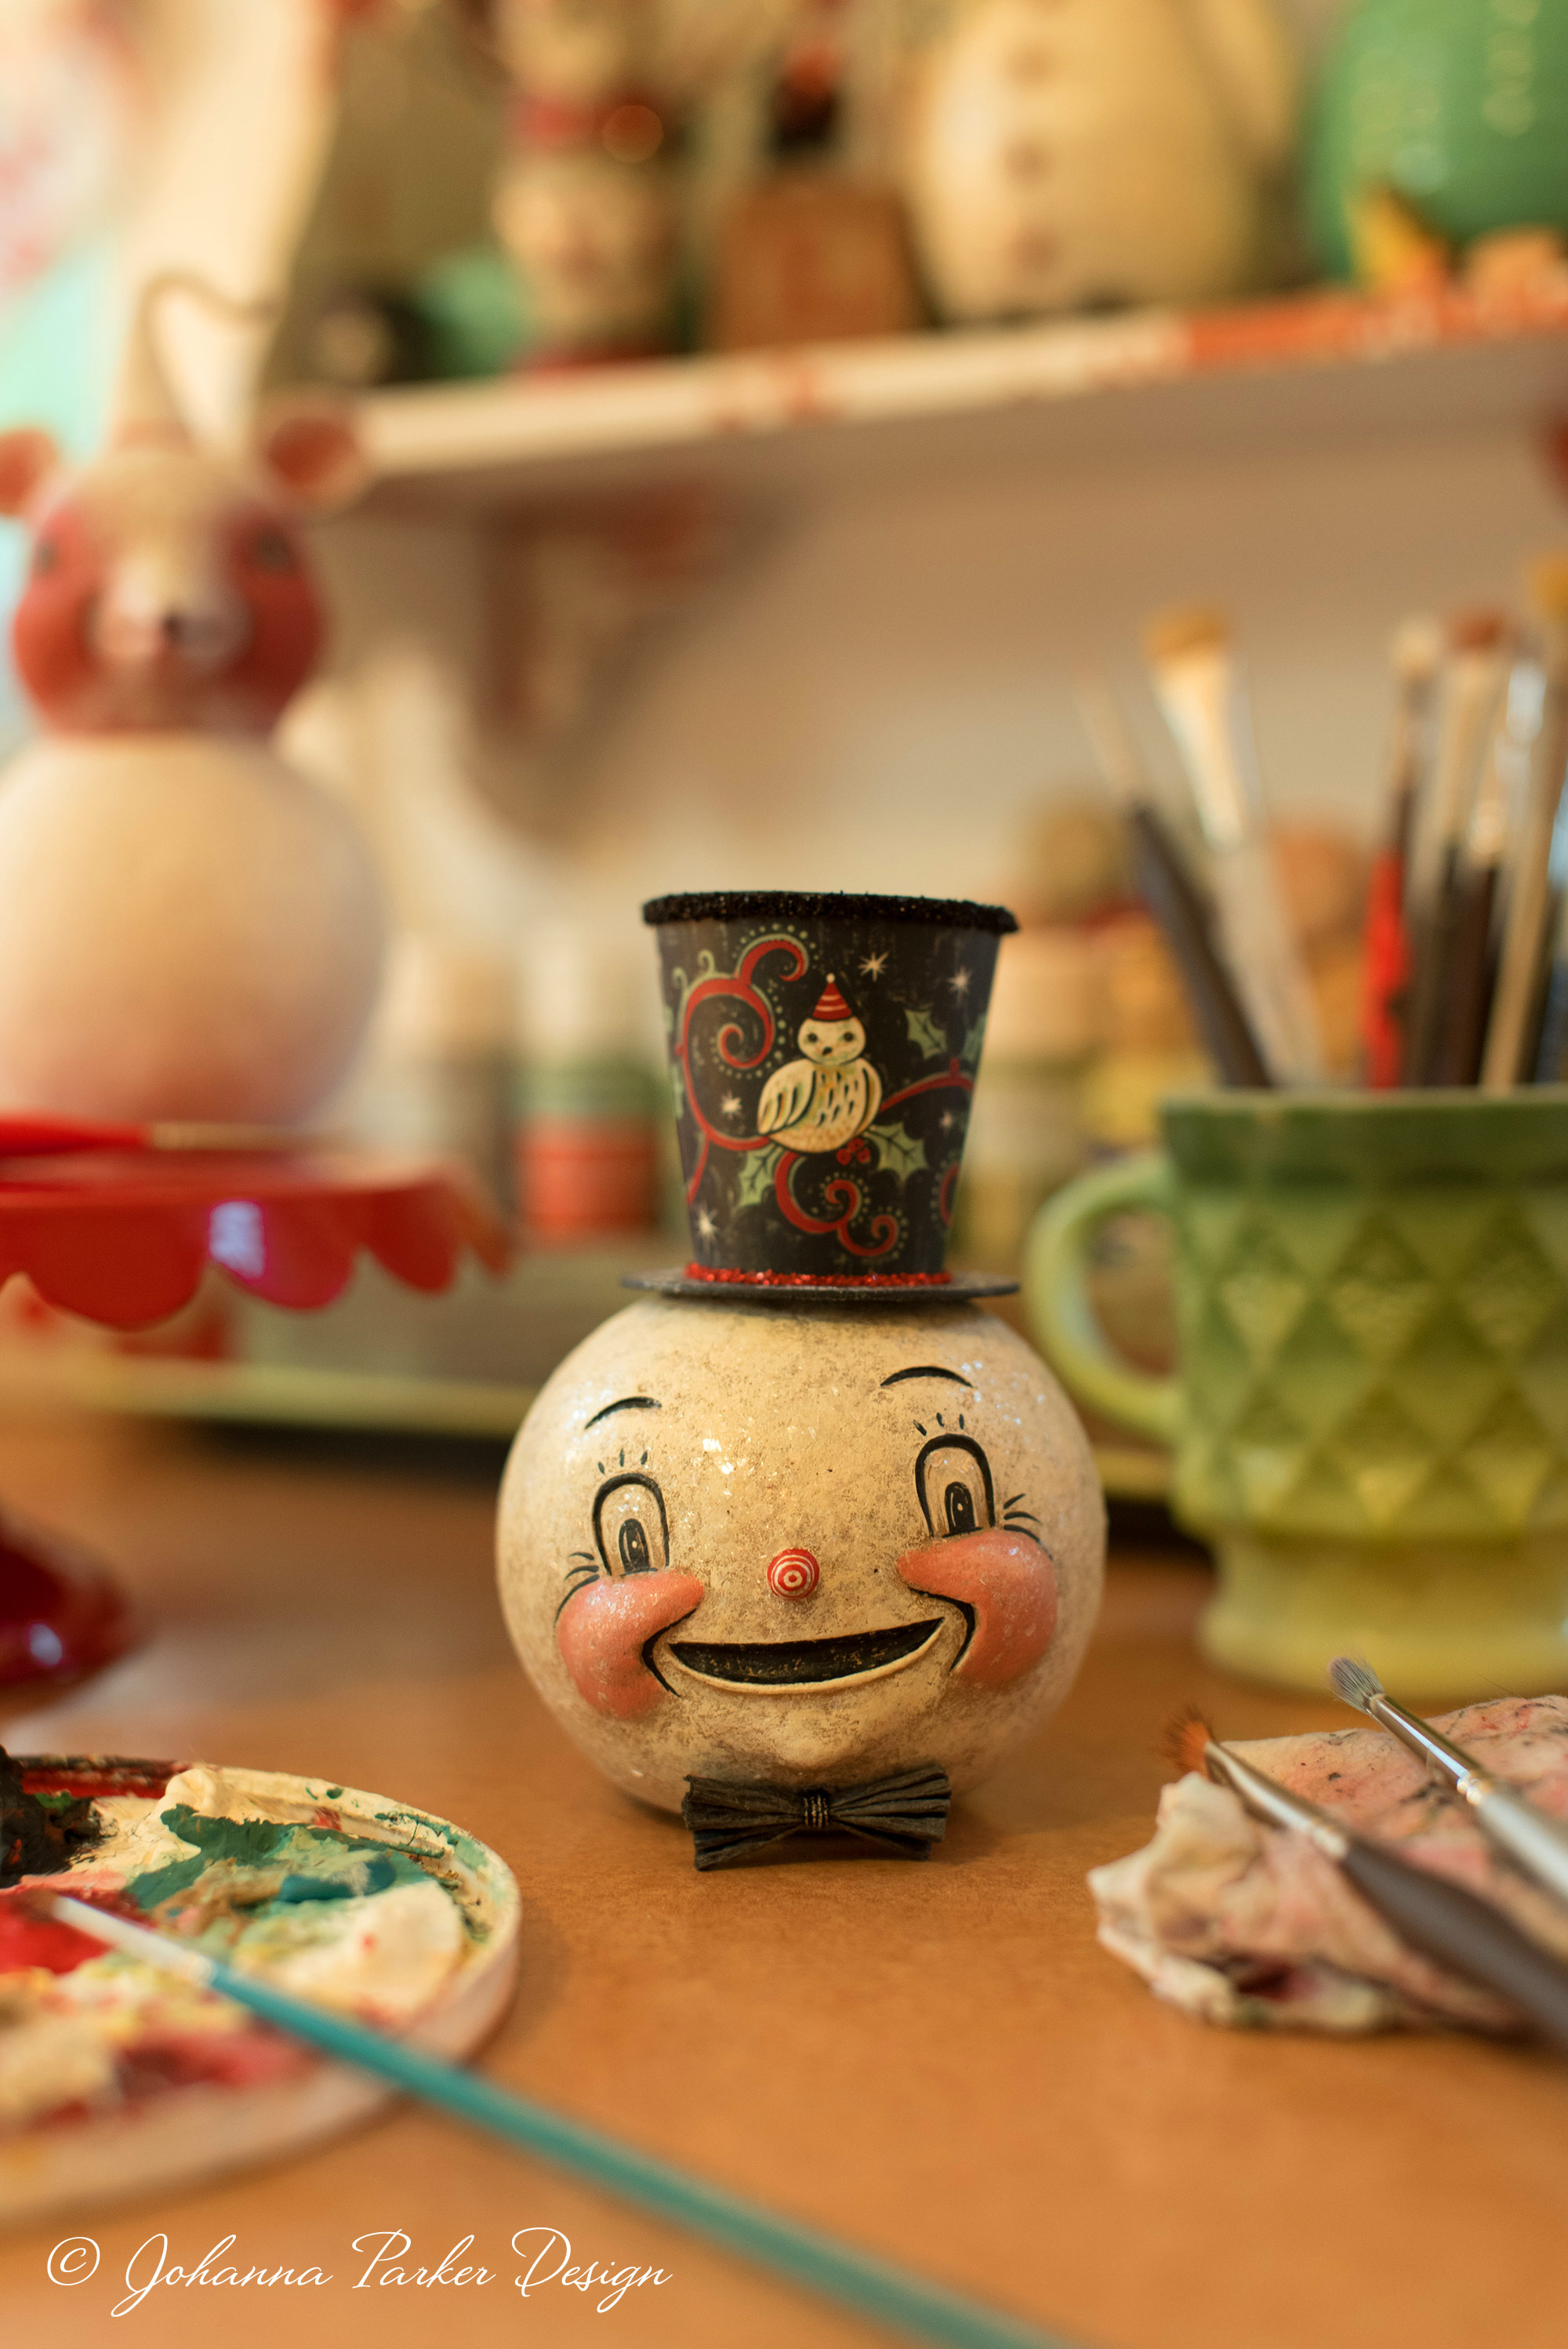 A jolly snowman head, donning an illustrated top hat, sports an enchanting smile.